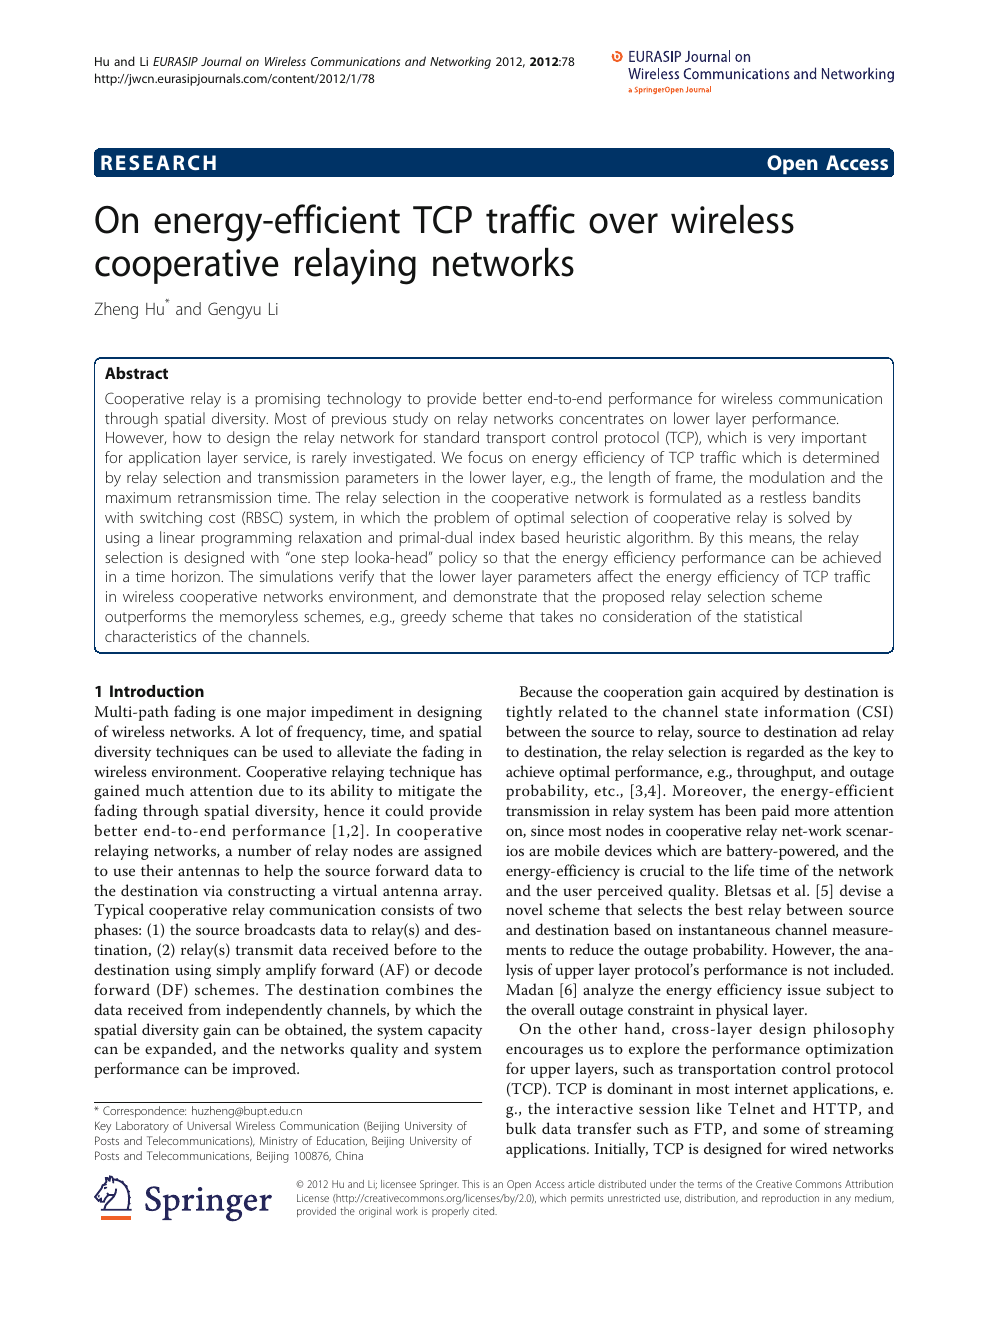 On energy-efficient TCP traffic over wireless cooperative